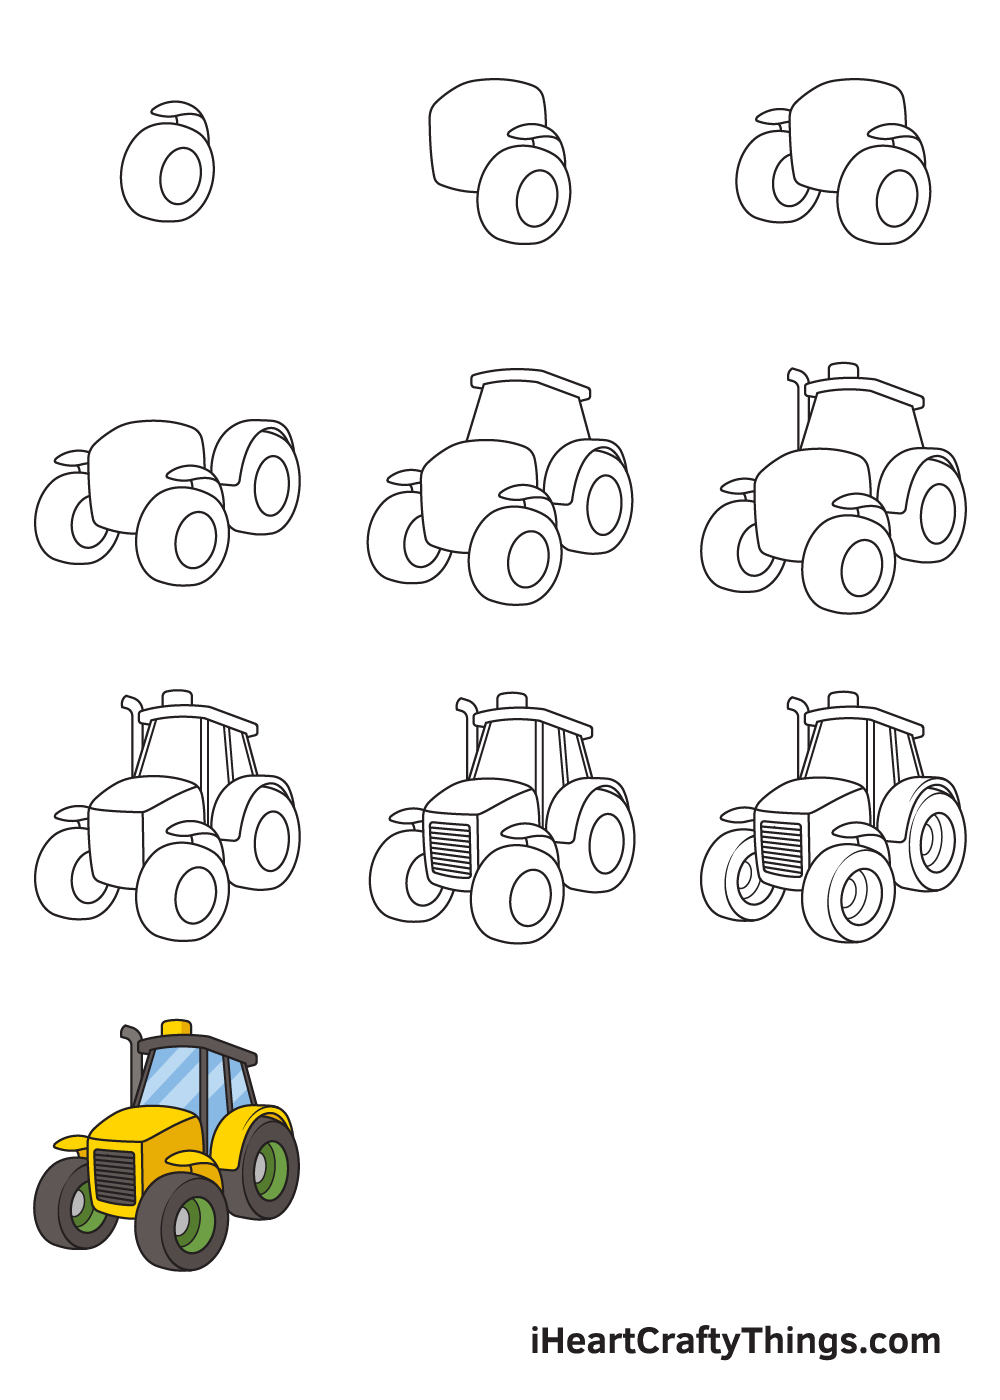 drawing tractor in 9 steps